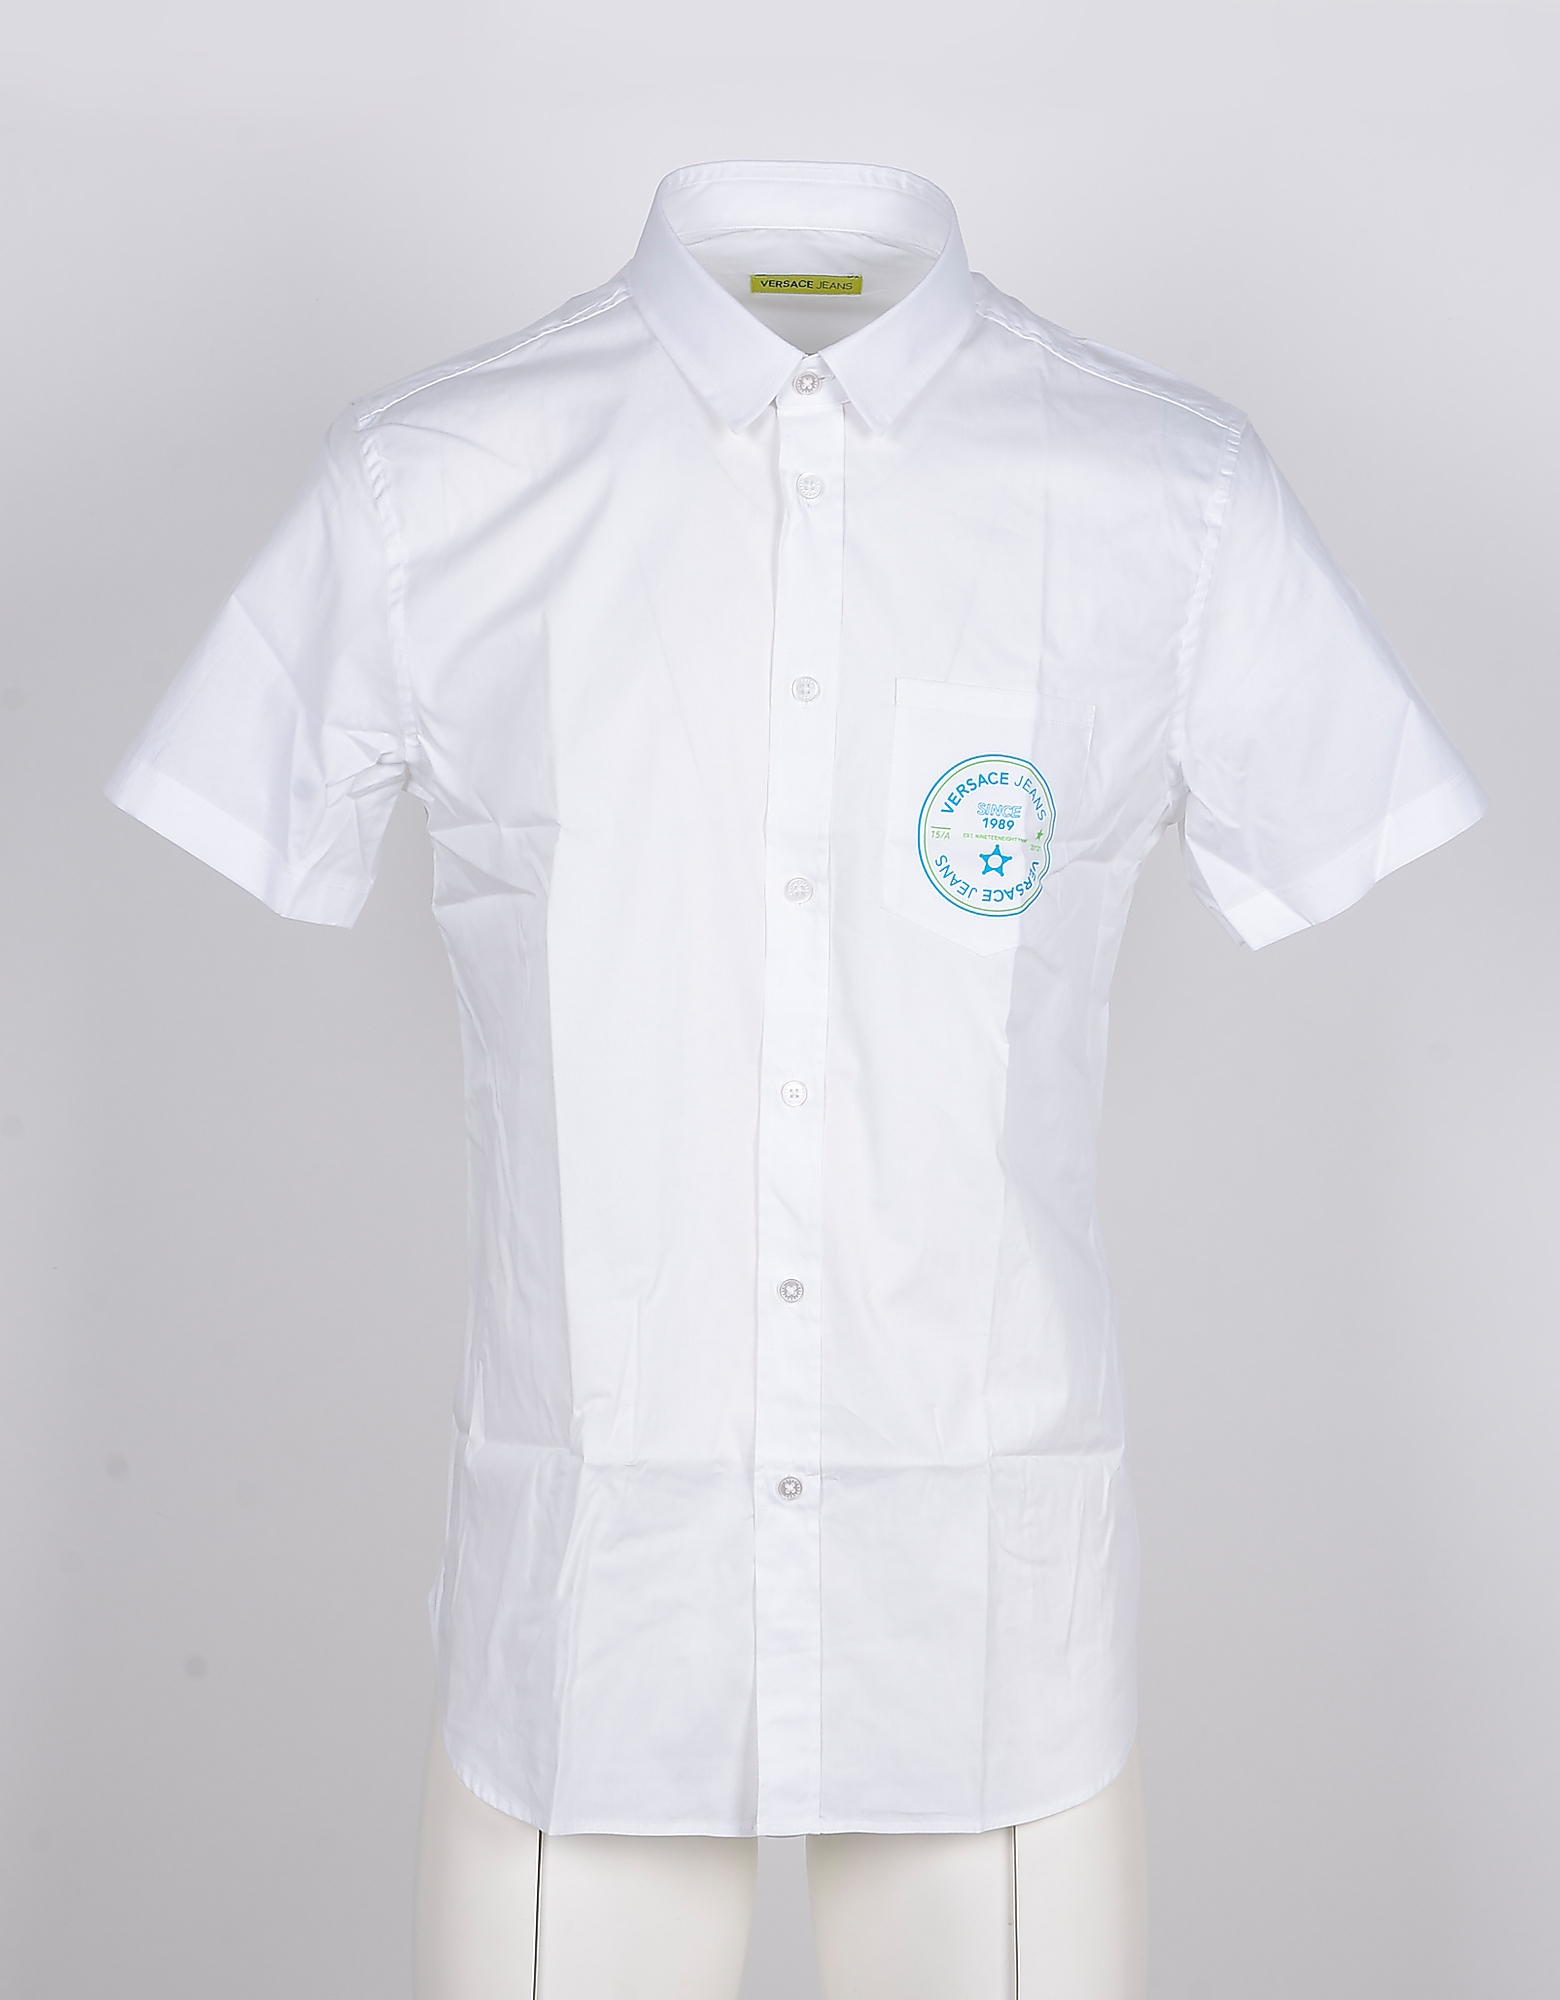 Versace Jeans Designer Shirts, Short-Sleeved White Cotton Men's Shirt